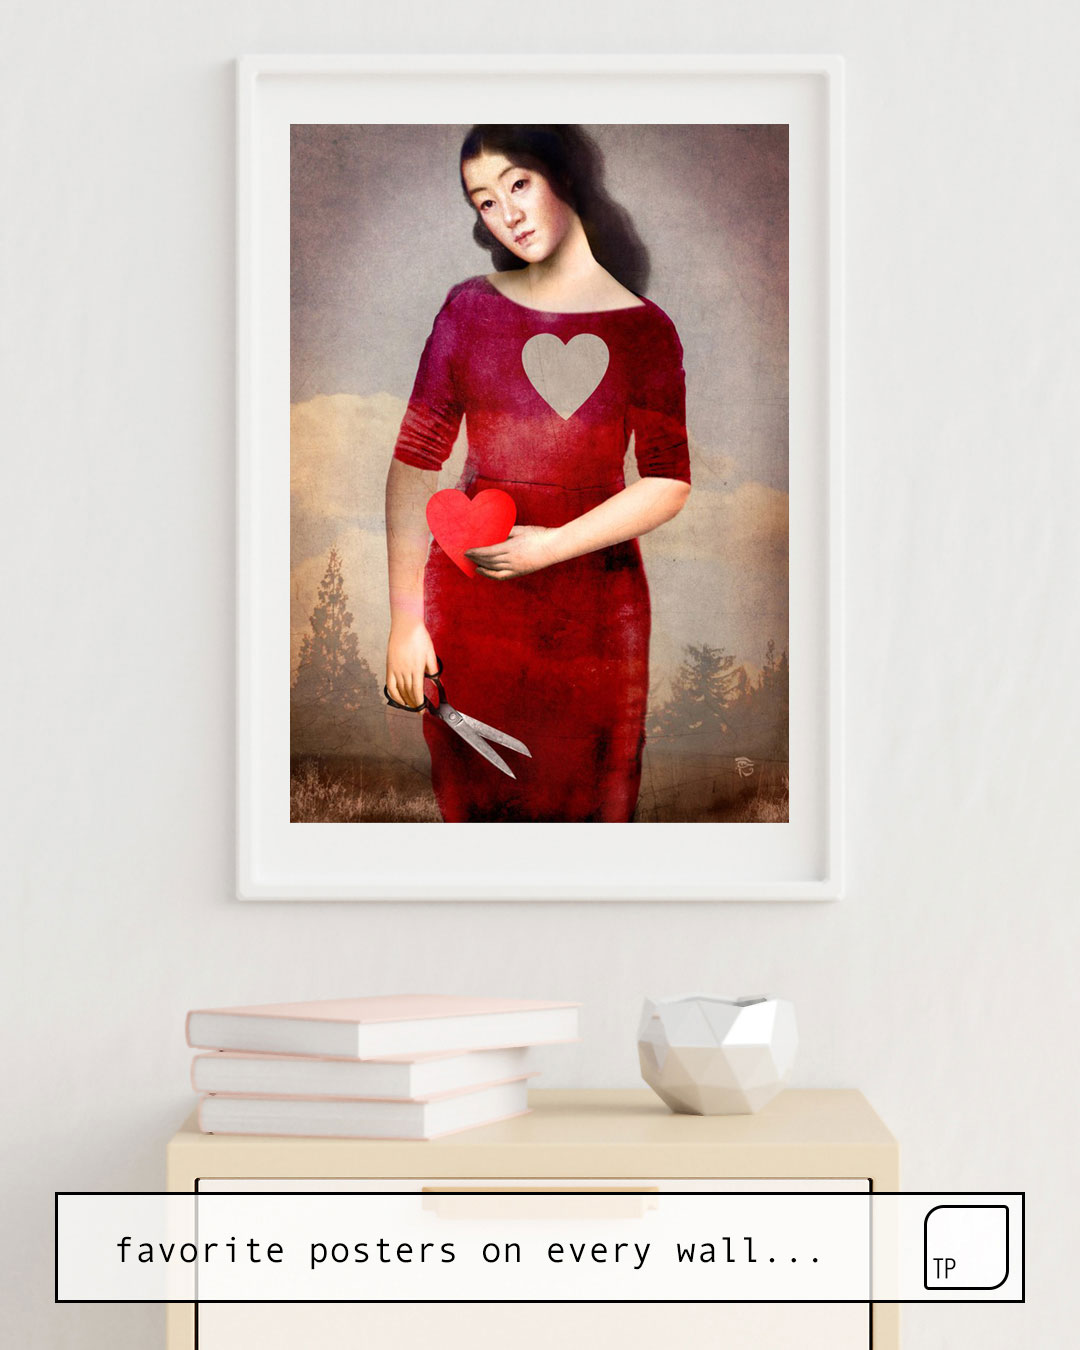 The photo shows an example of furnishing with the motif FOR YOU by Christian Schloe as mural